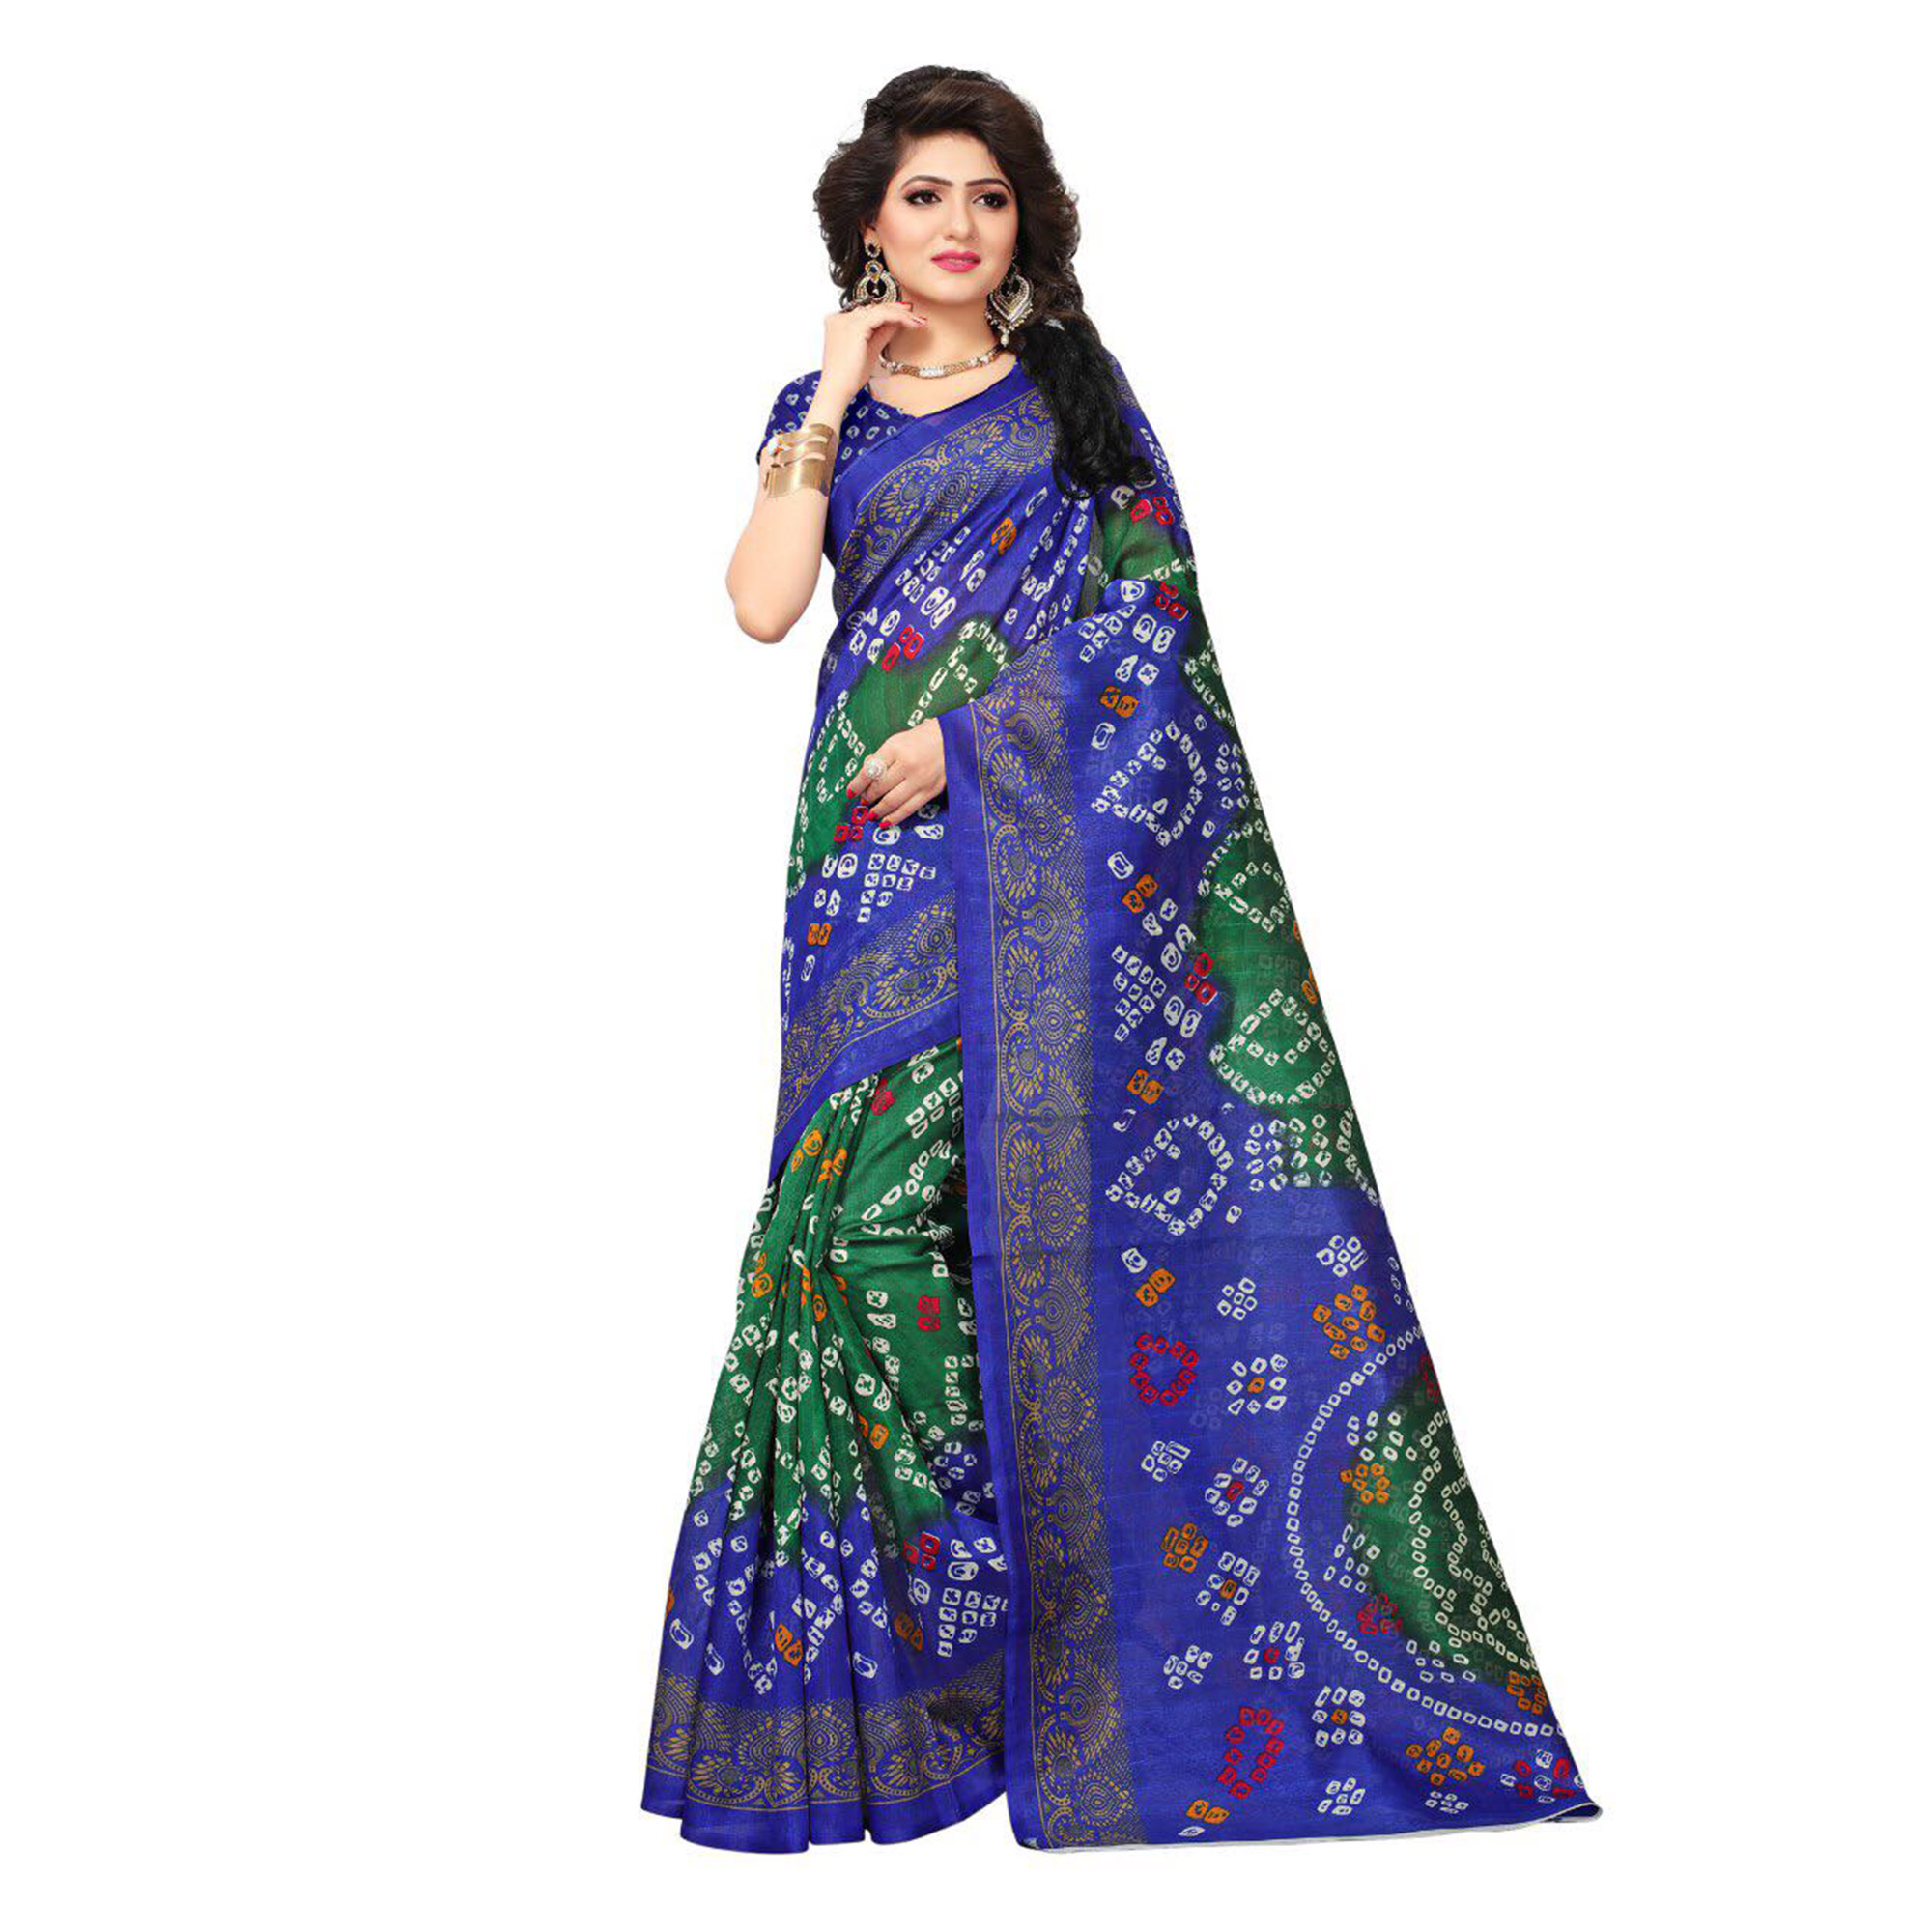 Classy Printed Festive Wear Bhagalpuri Silk Saree - Pack of 2